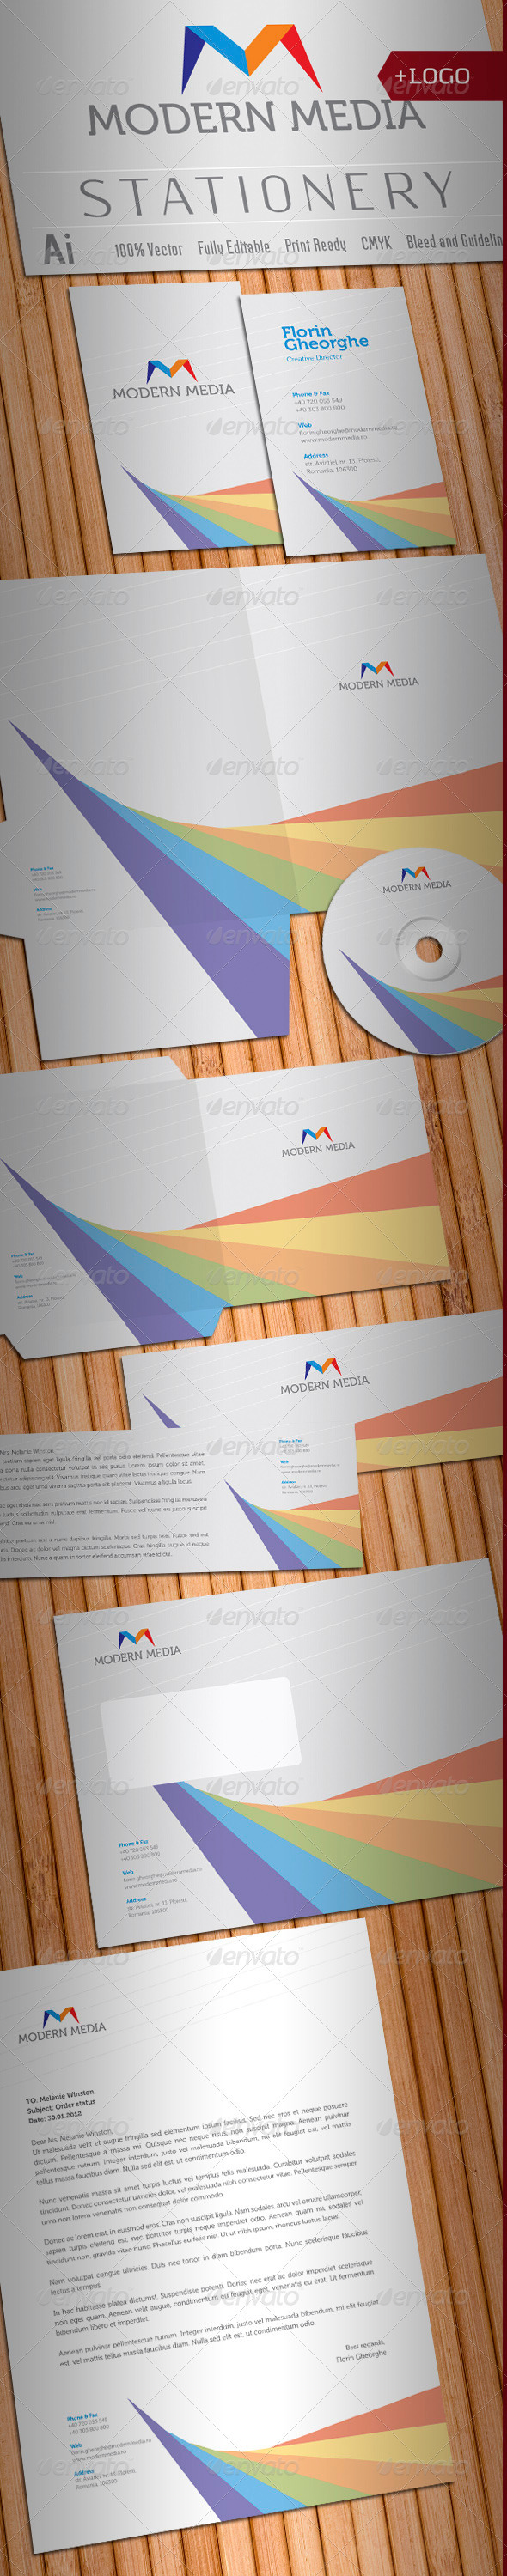 Modern Media Stationery - Stationery Print Templates